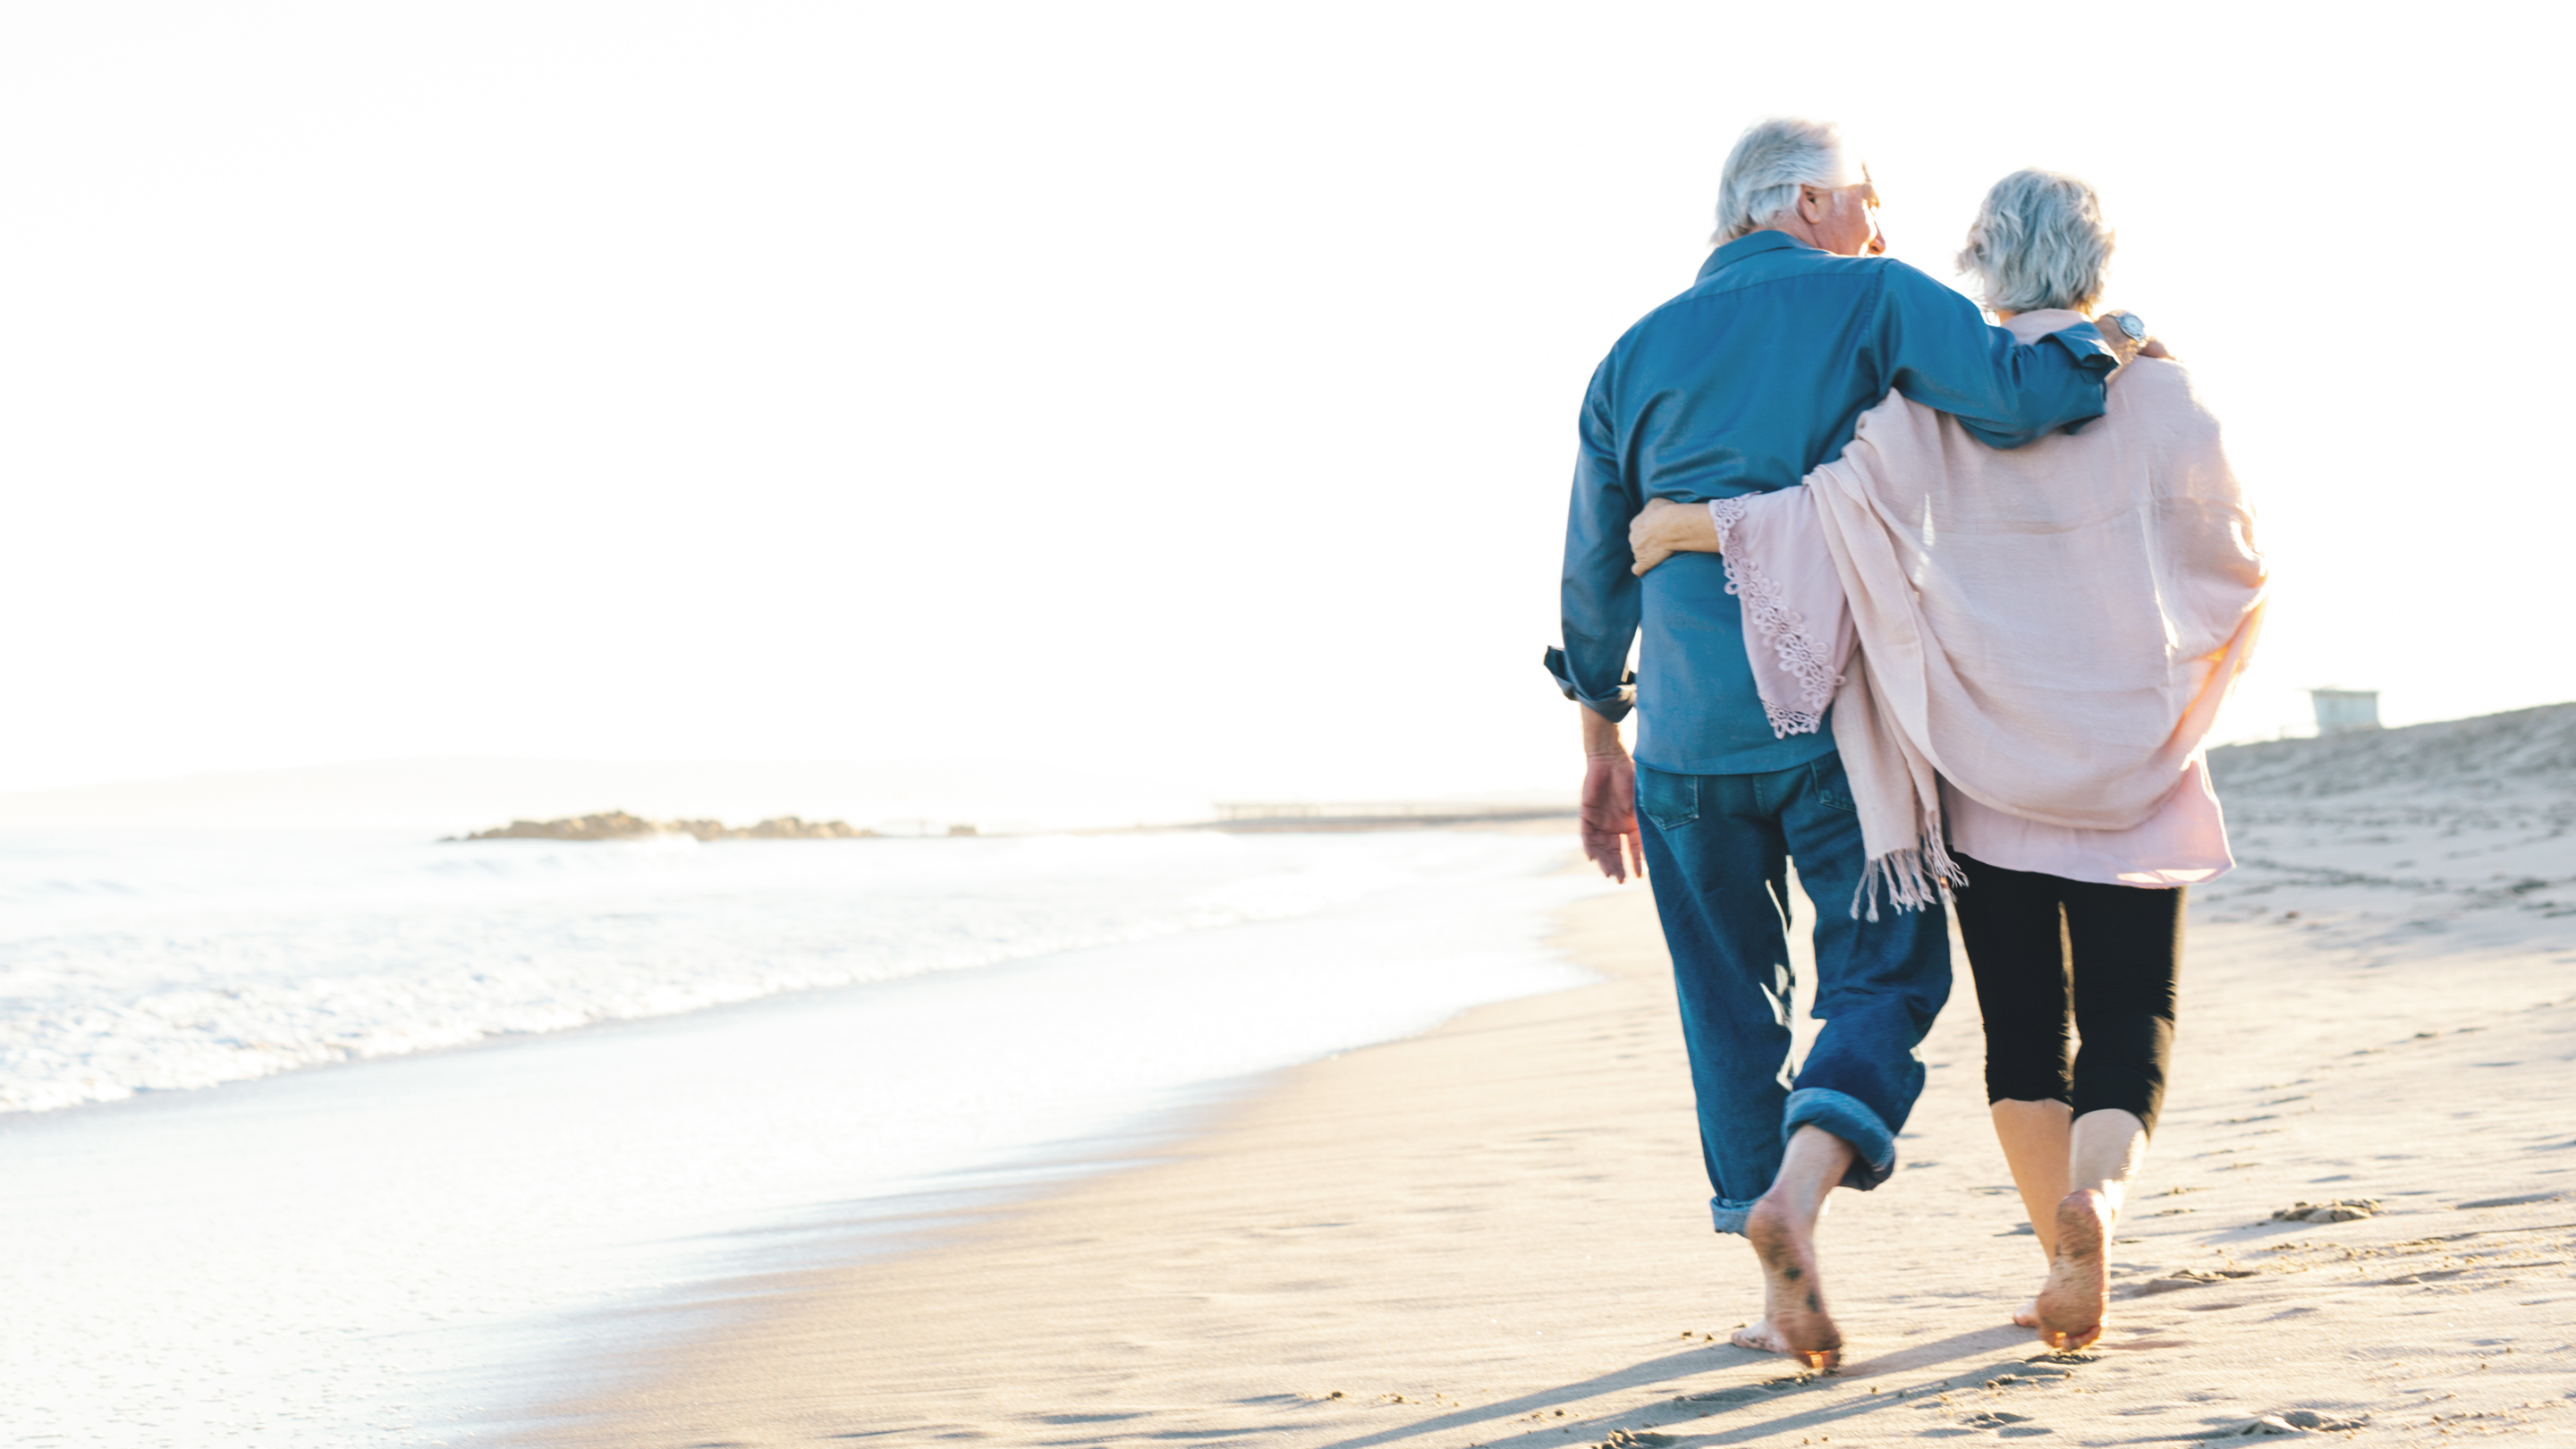 two older people walking on beach